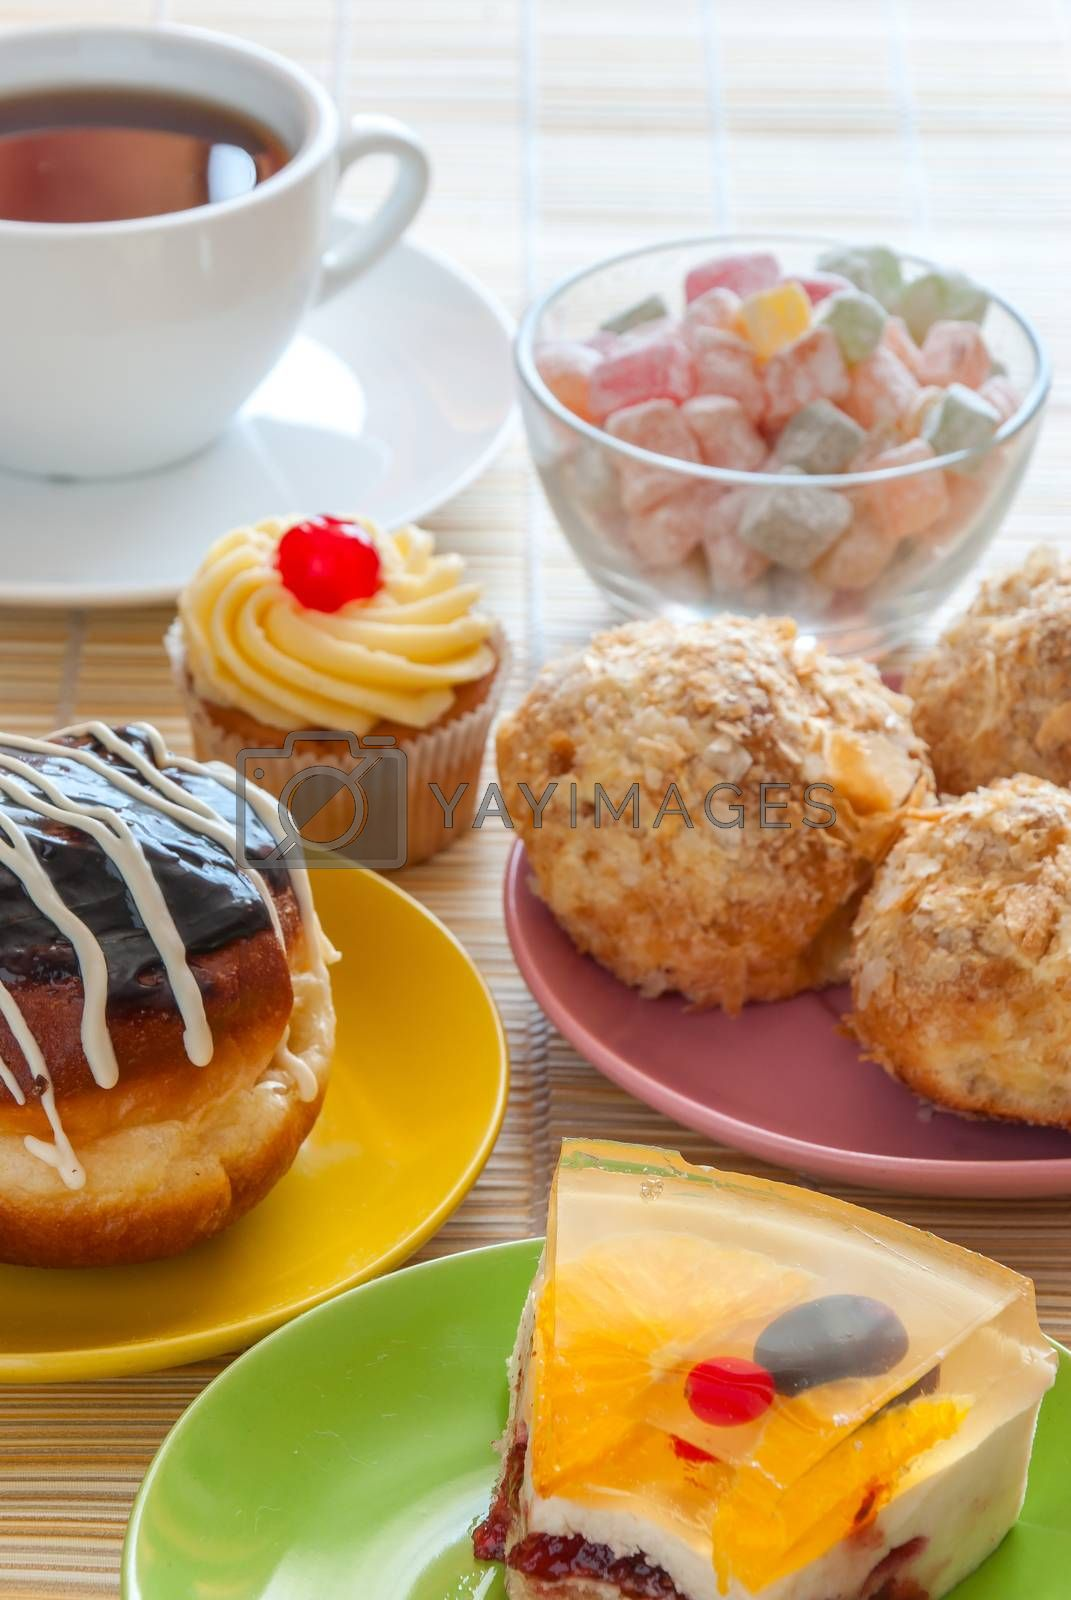 Tea, fresh cherry muffin, colorful delight, eclair and doughnut, various sweet dessert